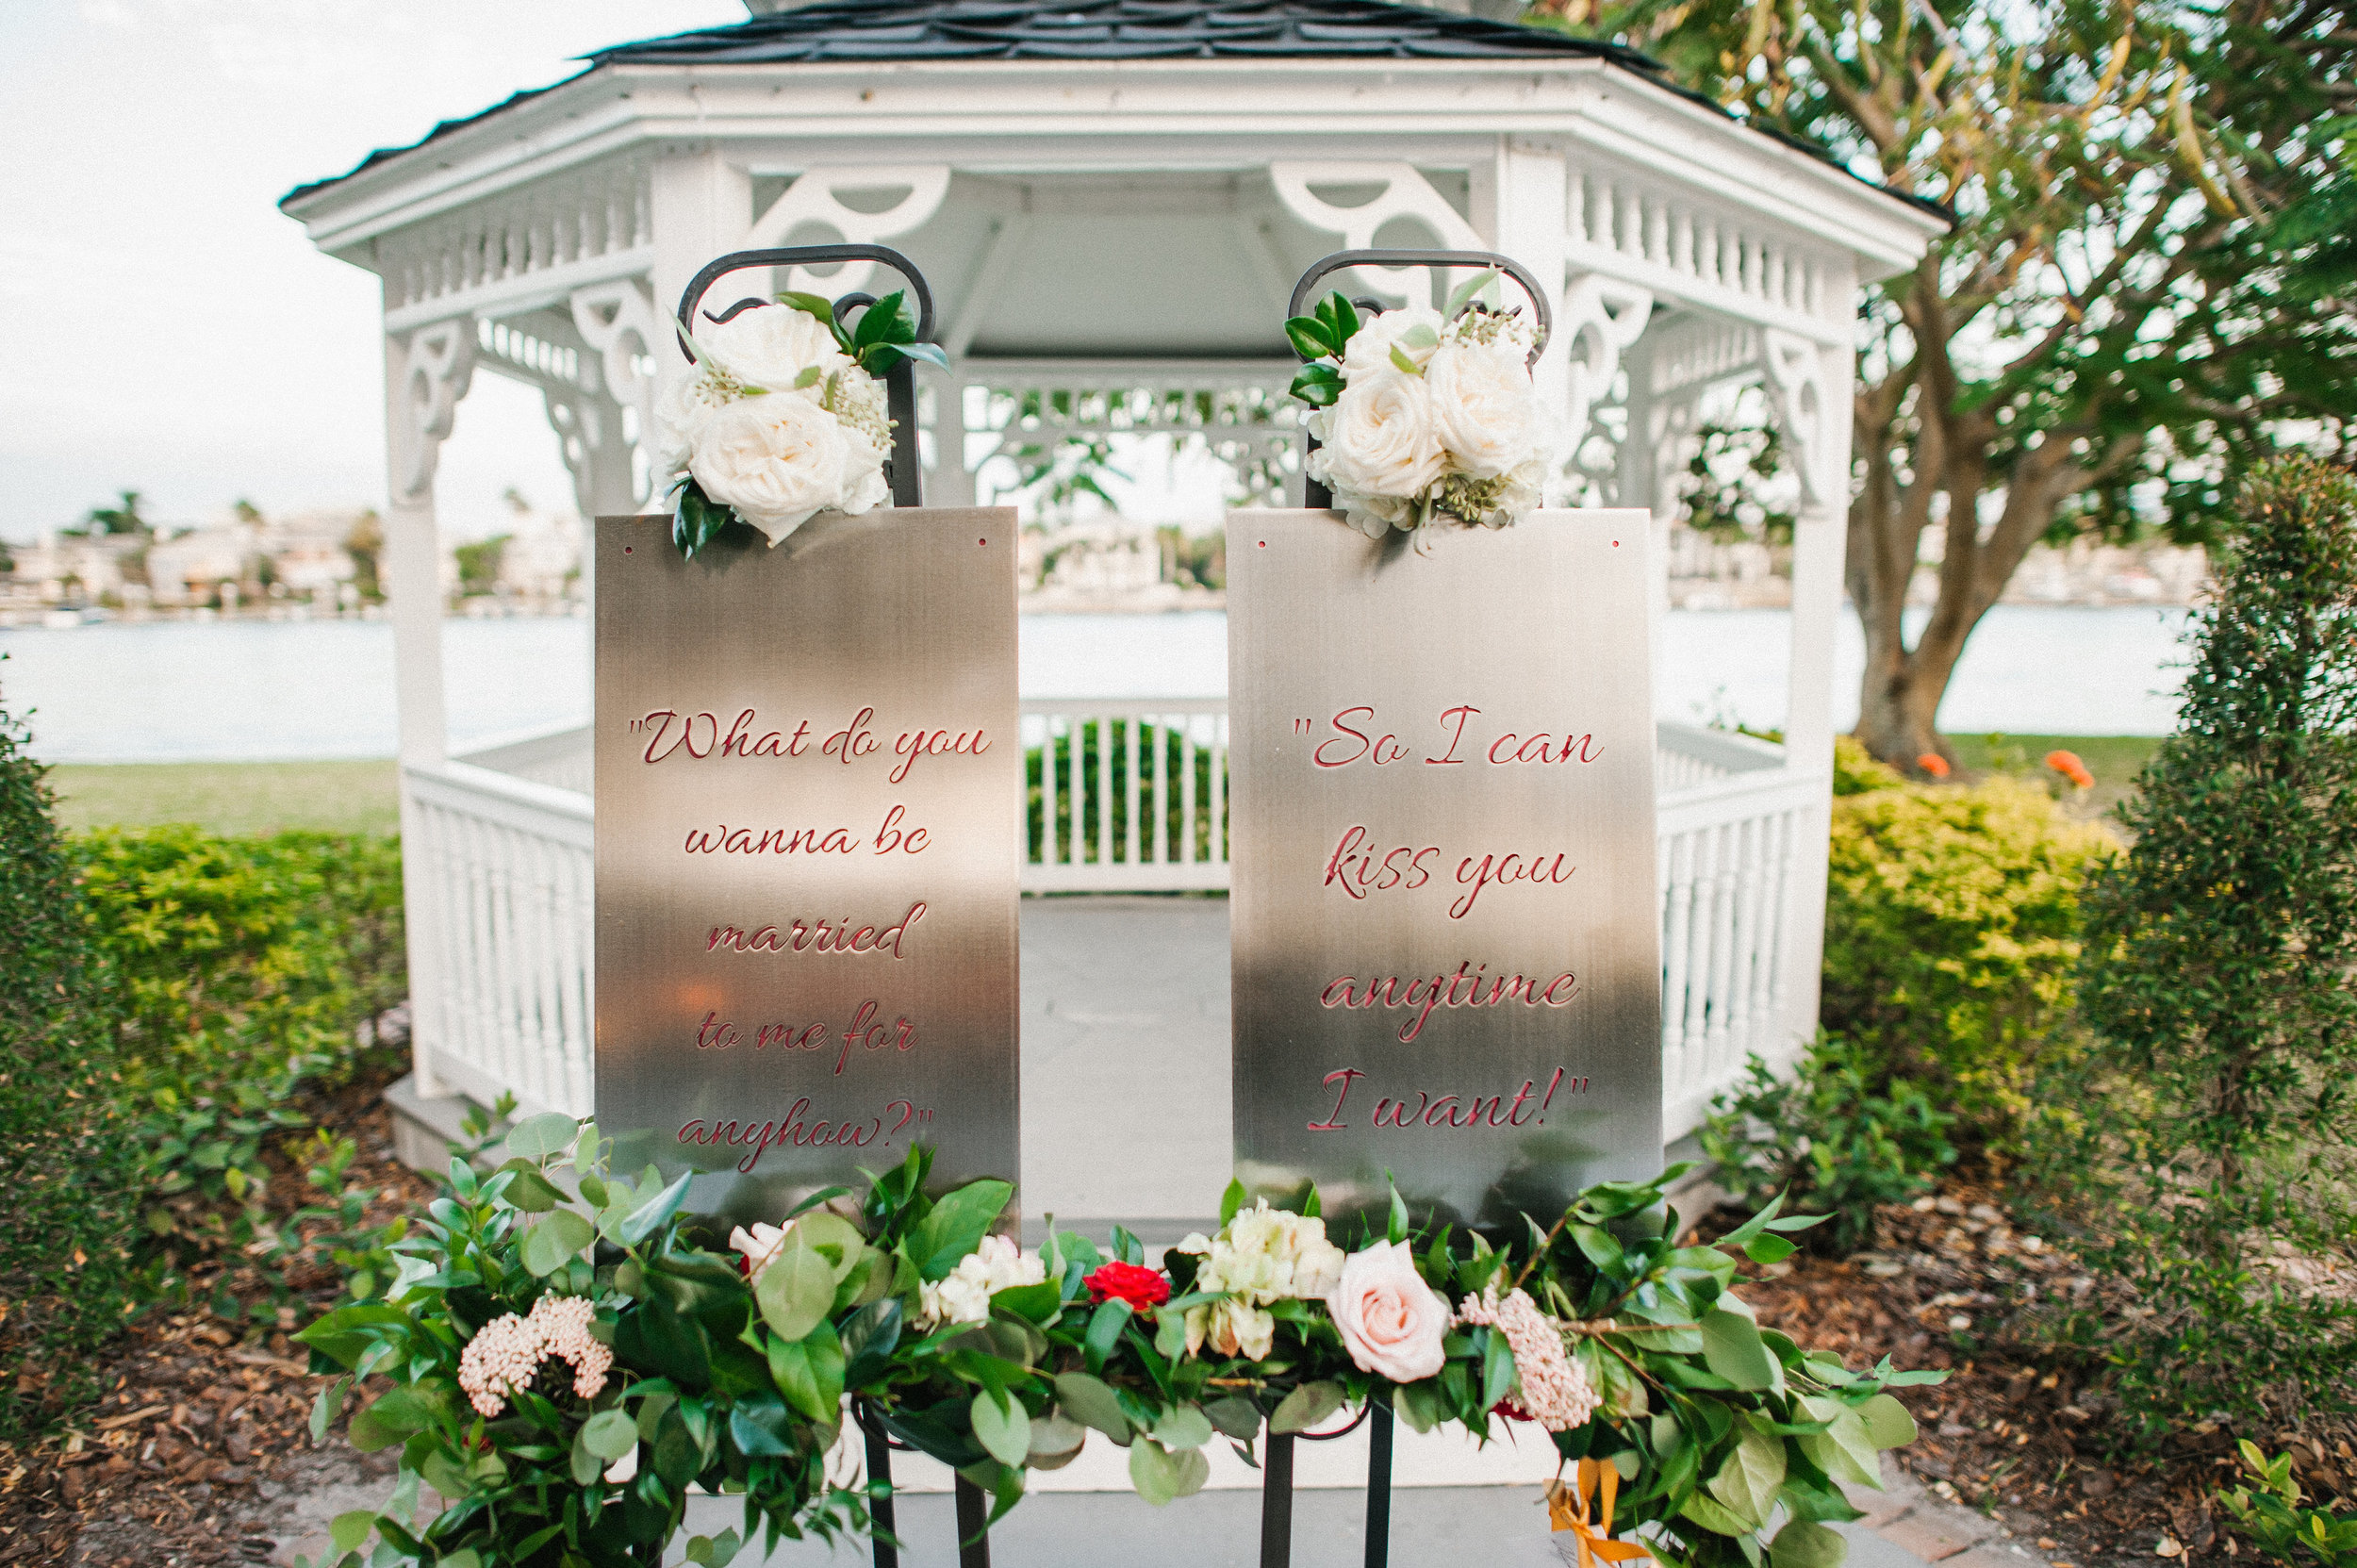 """The mother of the bride surprised the couple with custom garnet and gold metal signs with the sweetest quote from one of their favorite movies. The signs read """"What do you wanna be married to me for anyhow?"""" """"So I can kiss you anytime I want!"""" and were draped in complimentary florals and greenery,and sat behind the bride and groom during the reception (so sweet!)"""